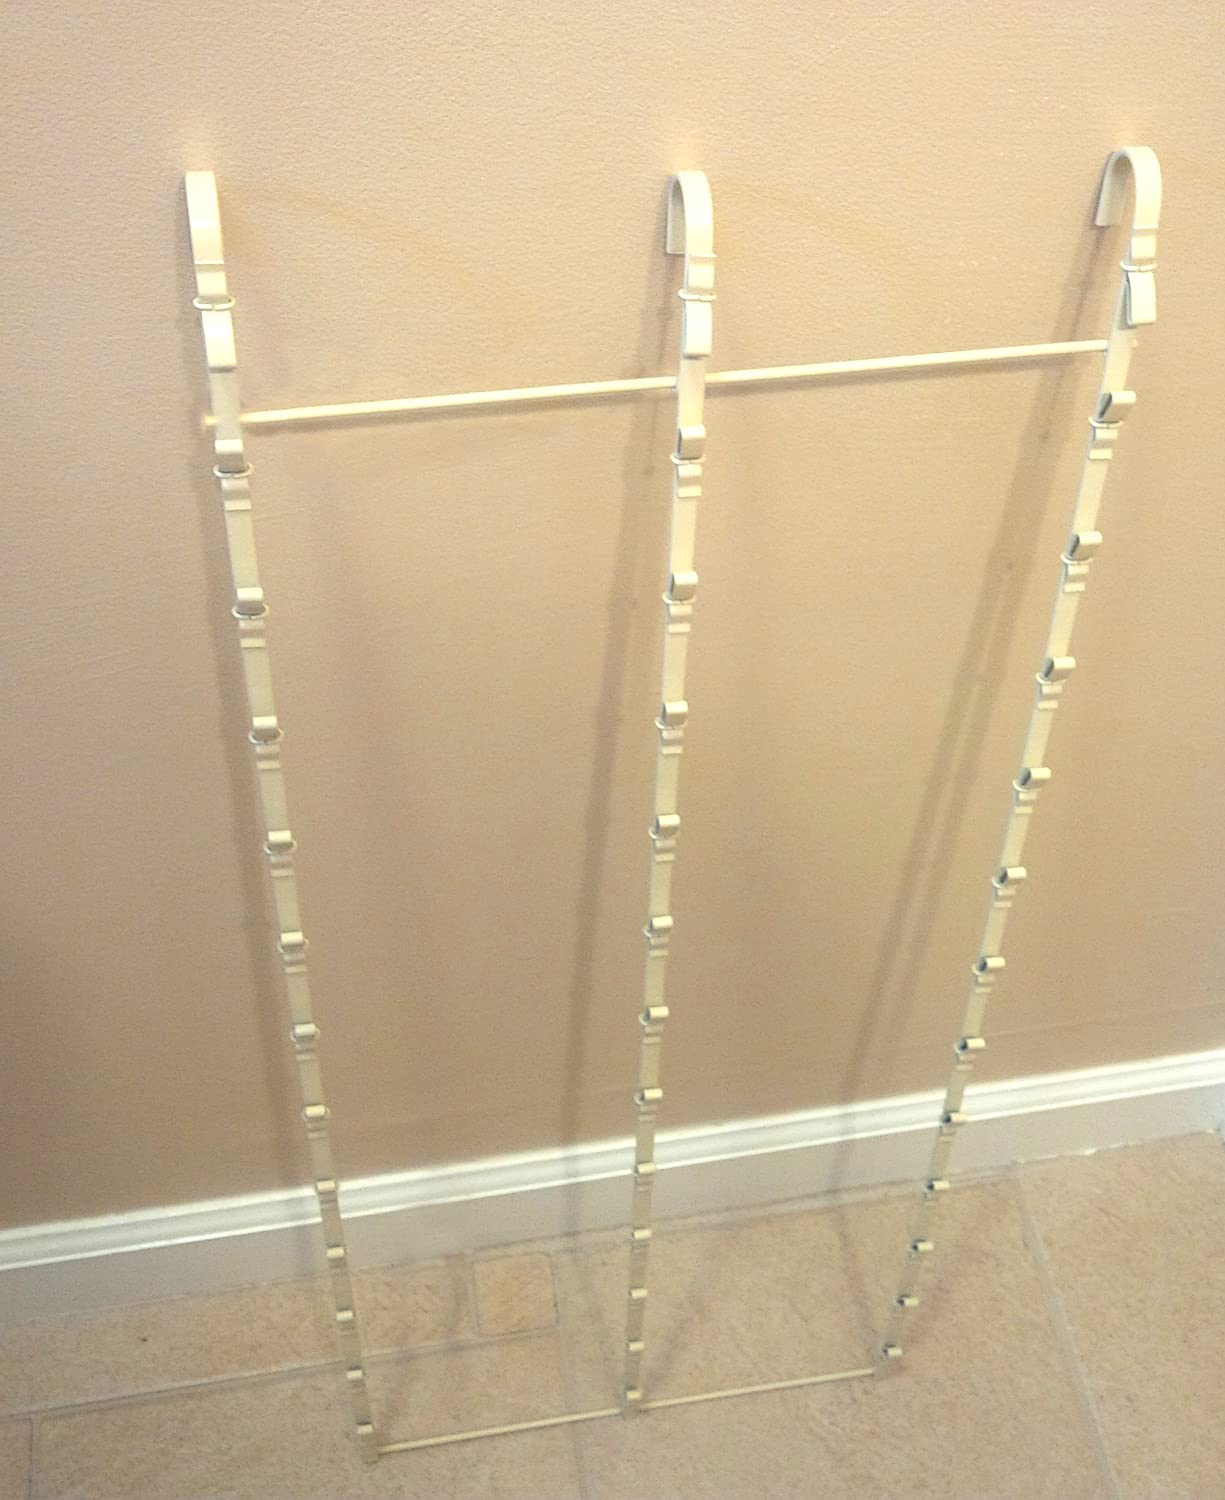 3 strips 39 clip potato chip candy snack almond hanging display rack